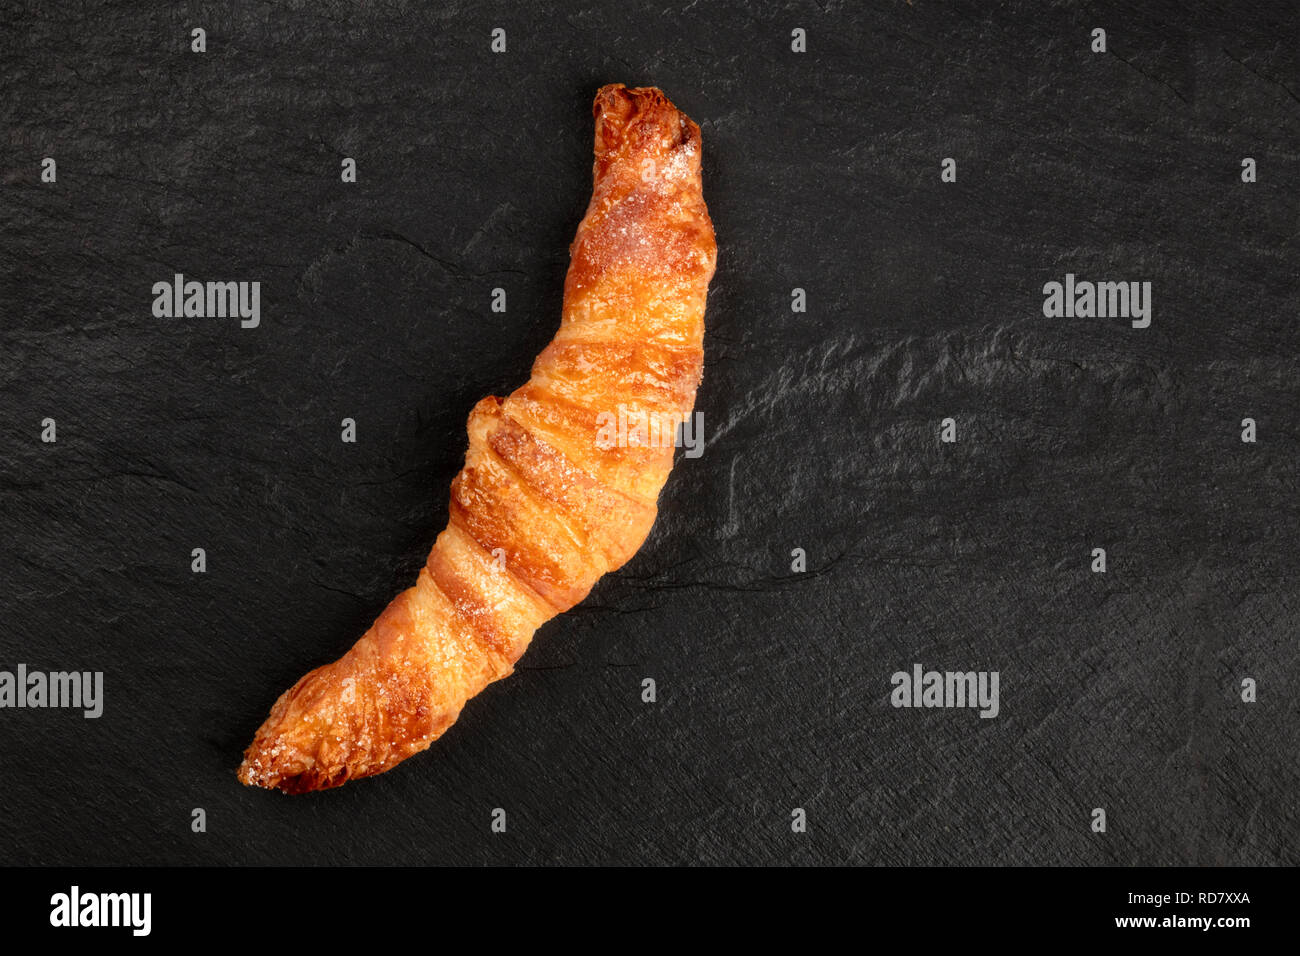 A photo of a croissant on a black background, shot from above with copy space - Stock Image